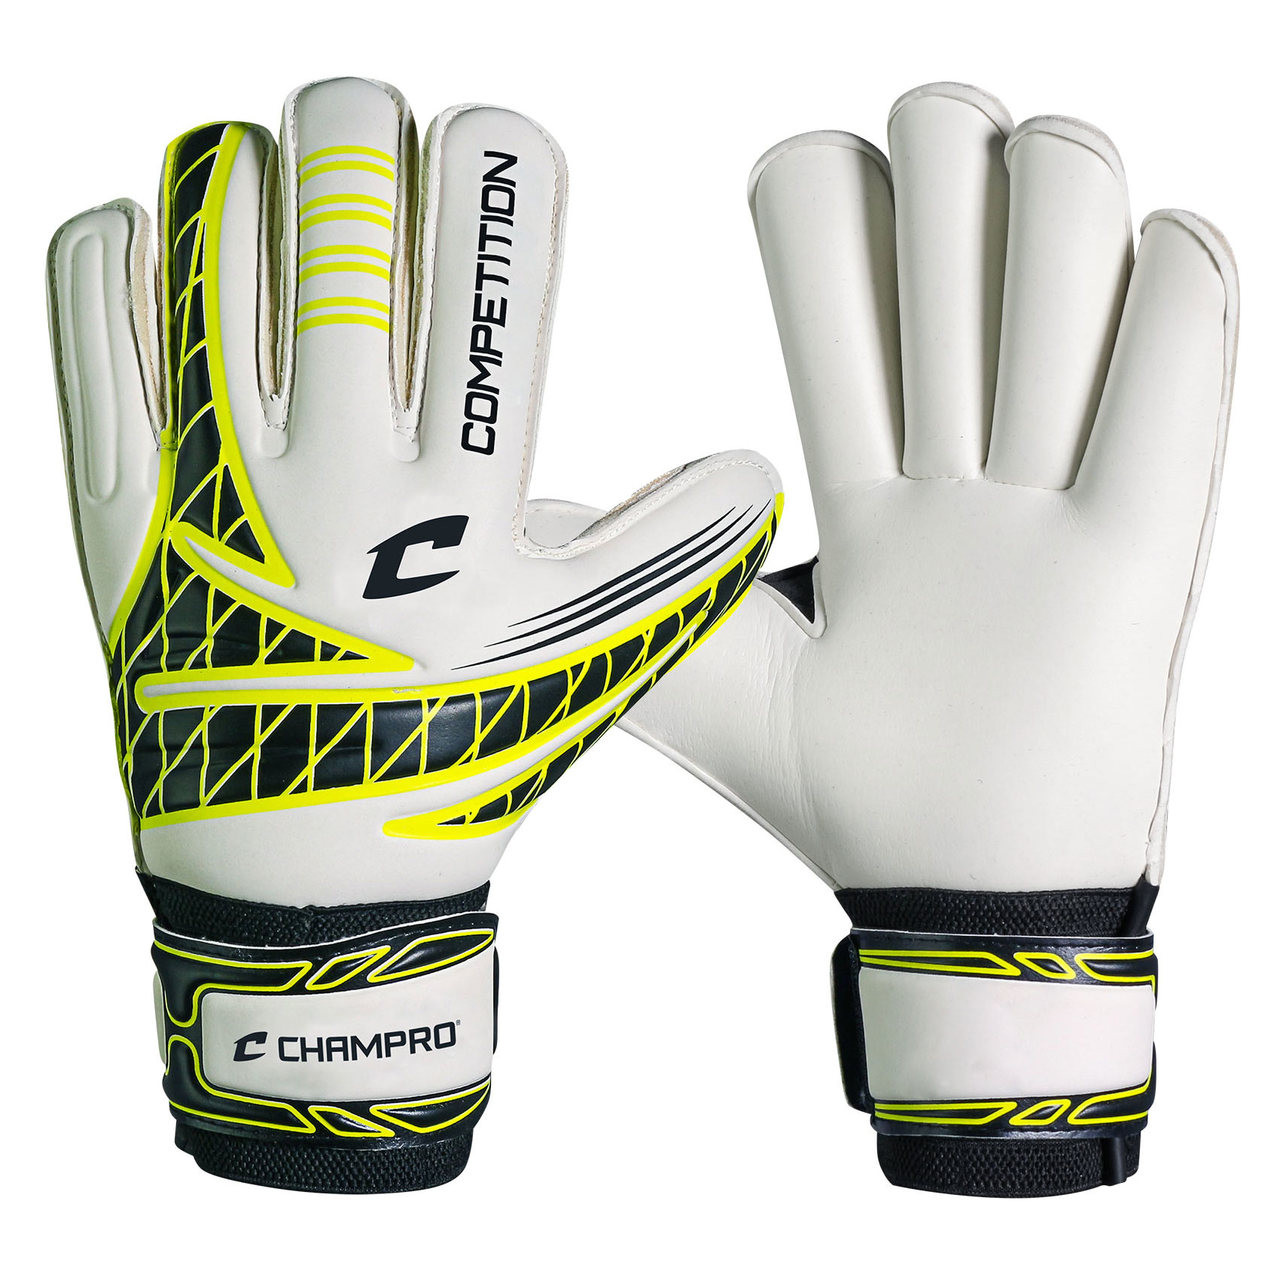 Champro Sports Competition Goalie Gloves